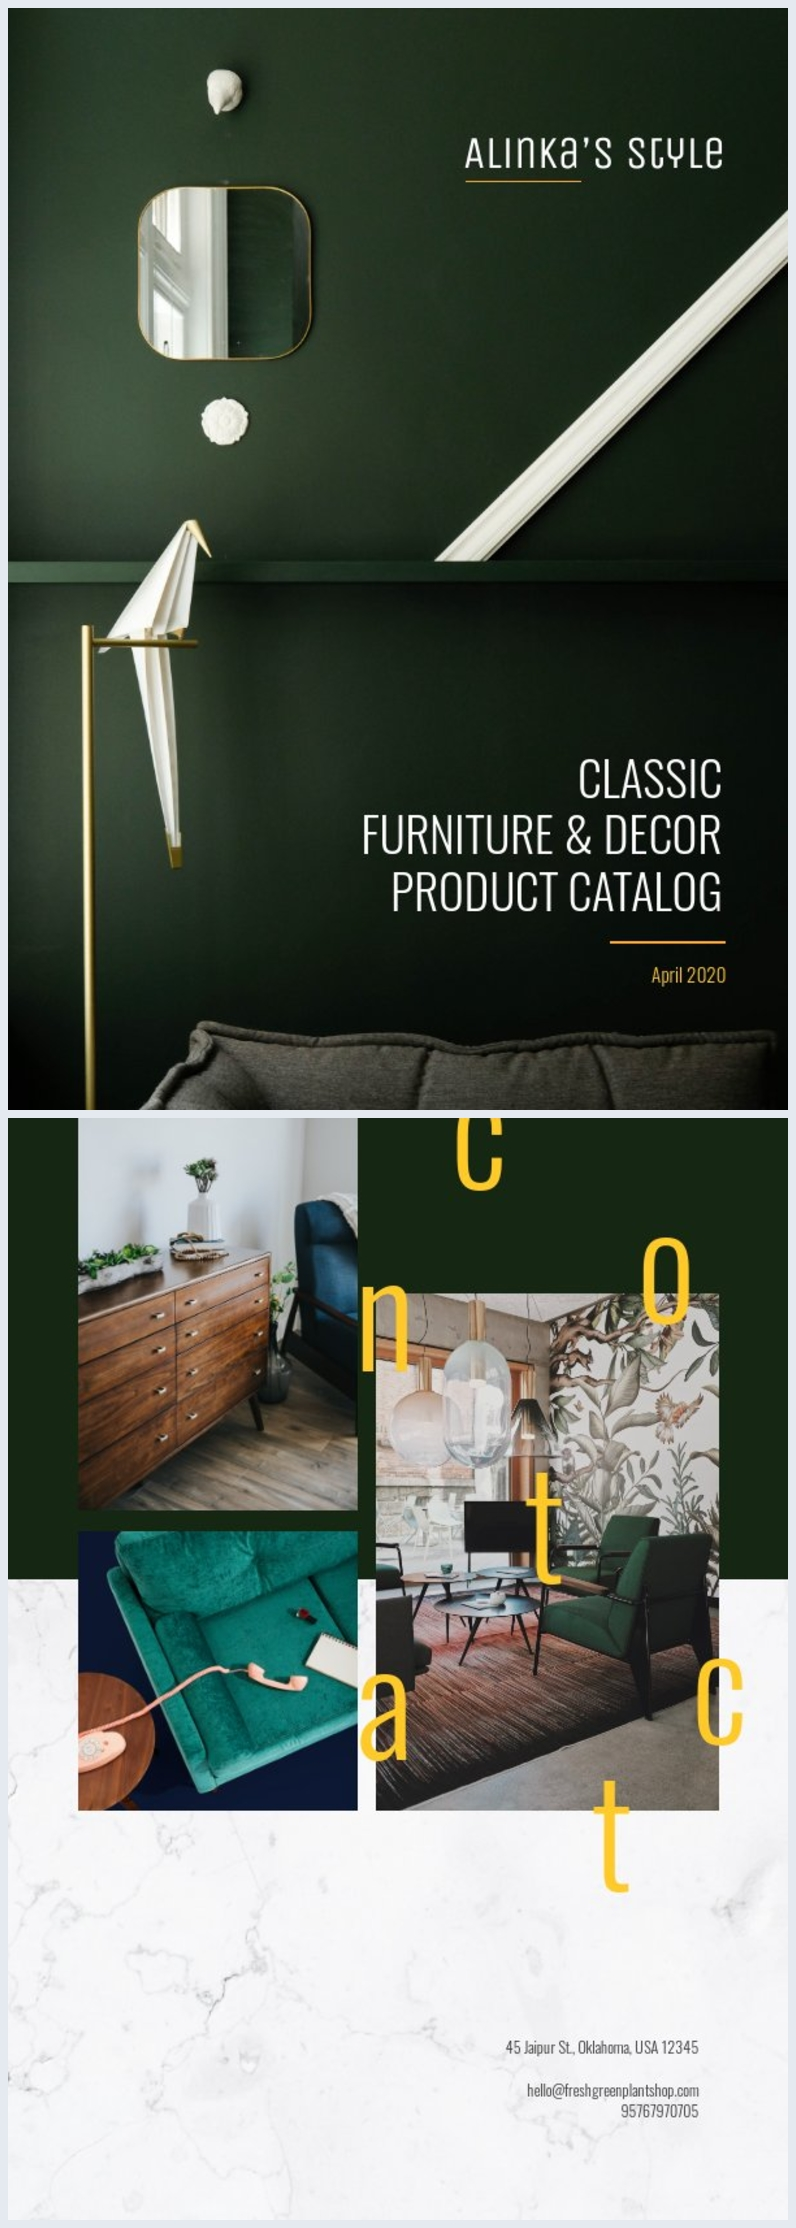 Classic Product Catalog Cover Design